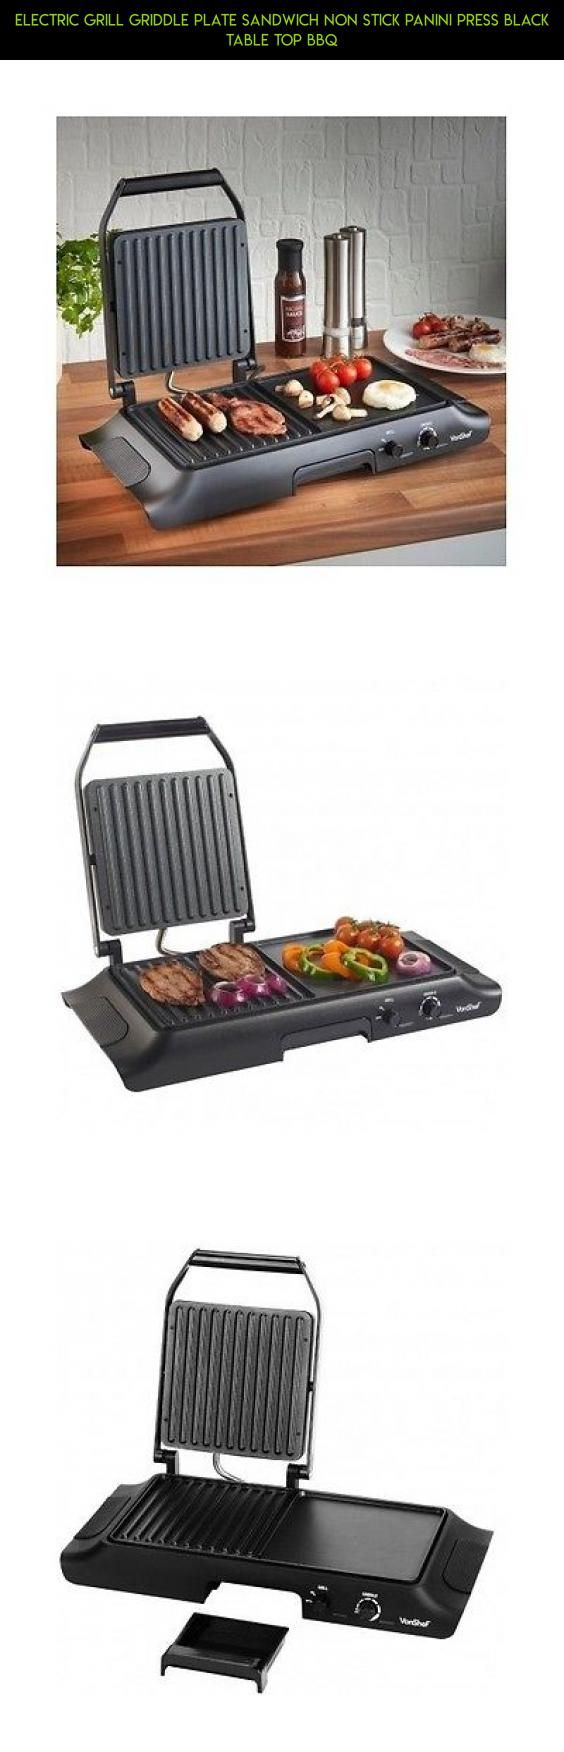 Electric Grill Griddle Plate Sandwich Non Stick Panini Press Black Table Top BBQ #technology #kit #shopping #tech #grills #gadgets #fpv #drone #plans #top #table #racing #products #parts #electric #camera